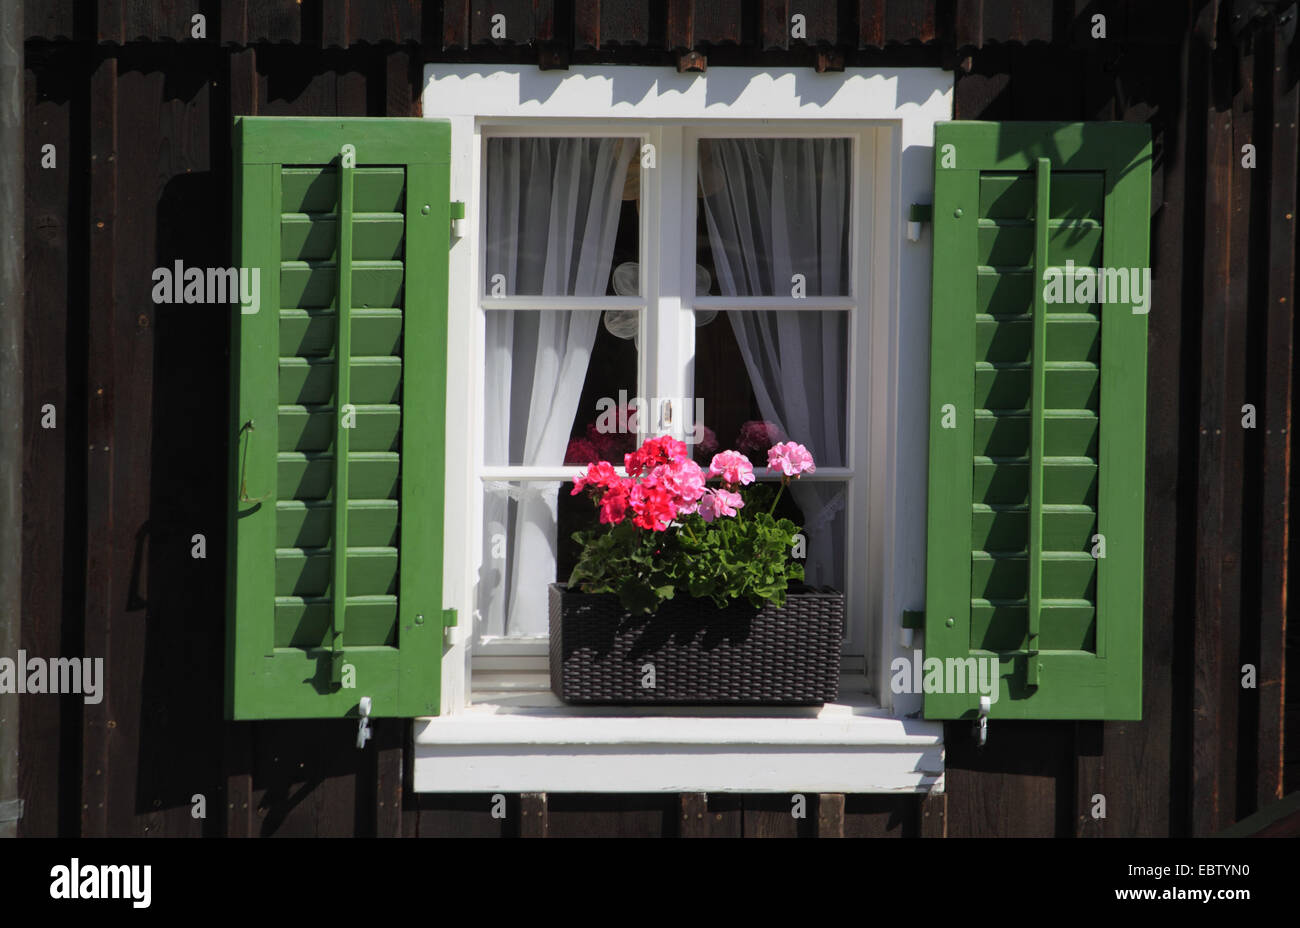 window with opened shutters and flower box with geraniums, Switzerland - Stock Image